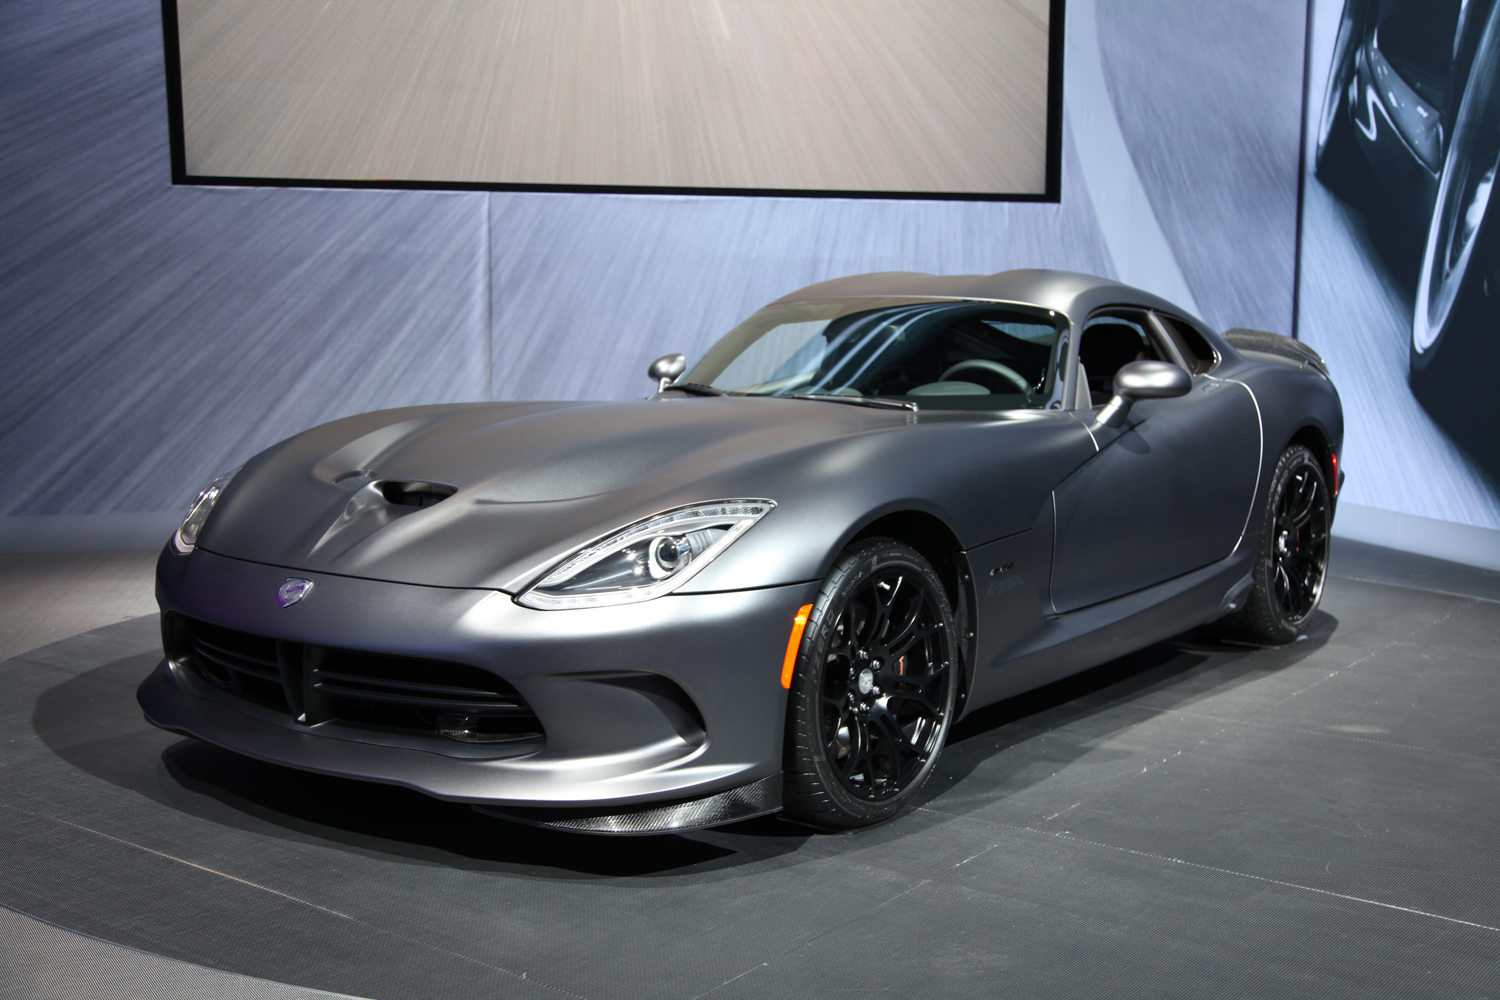 New York 2014 Srt Viper Time Attack Anodized Carbon